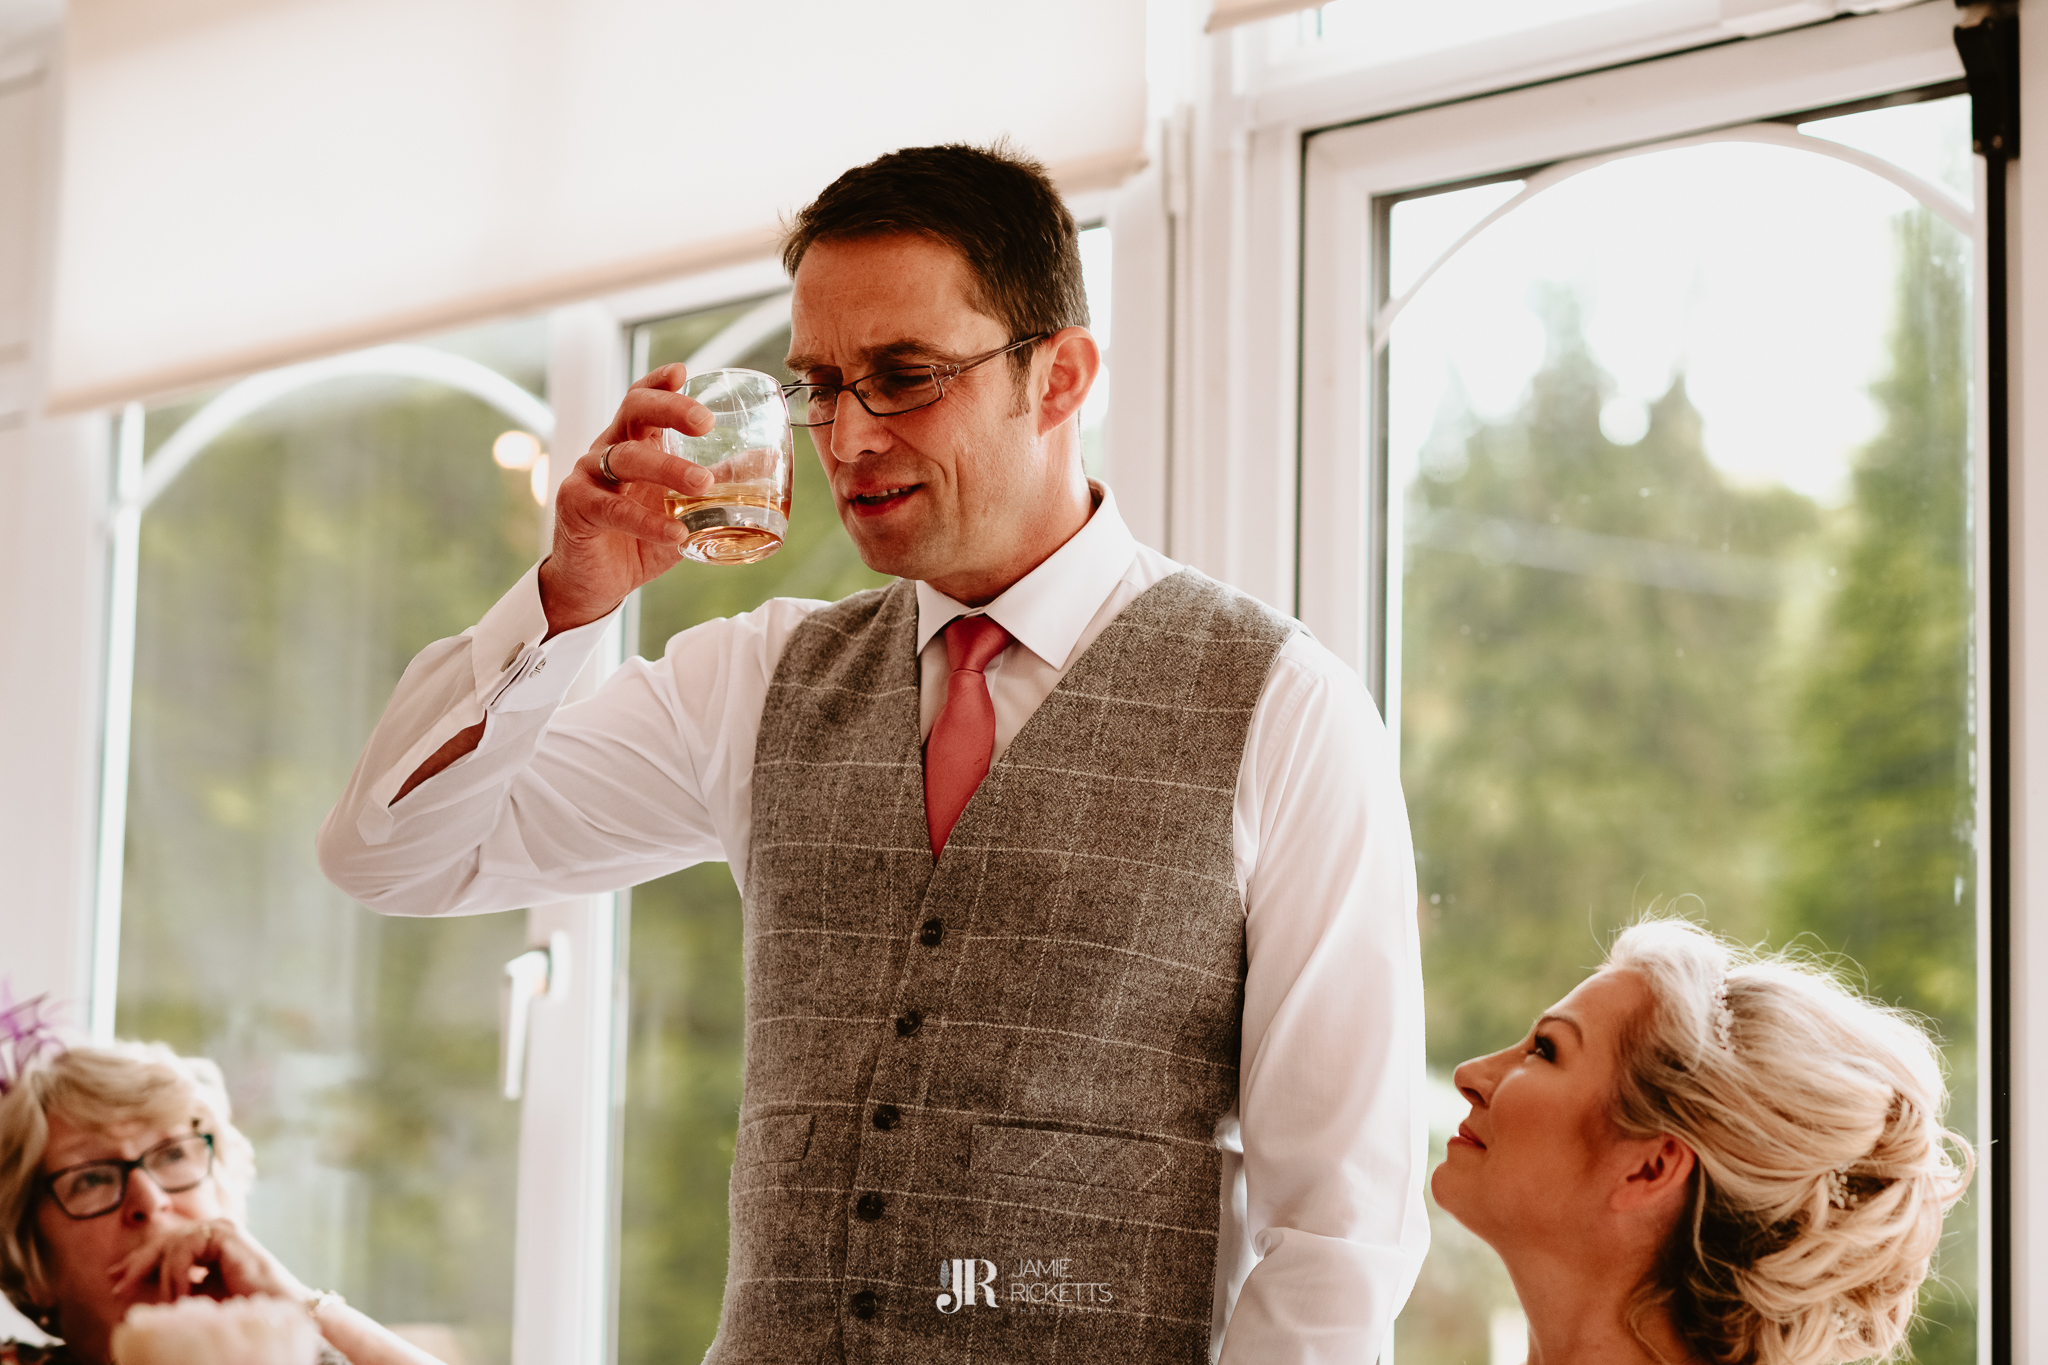 Wroxeter-Hotel-Wedding-Photography-In-Shropshire-By-Shropshire-Wedding-Photographer-Jamie-Ricketts-163.JPG